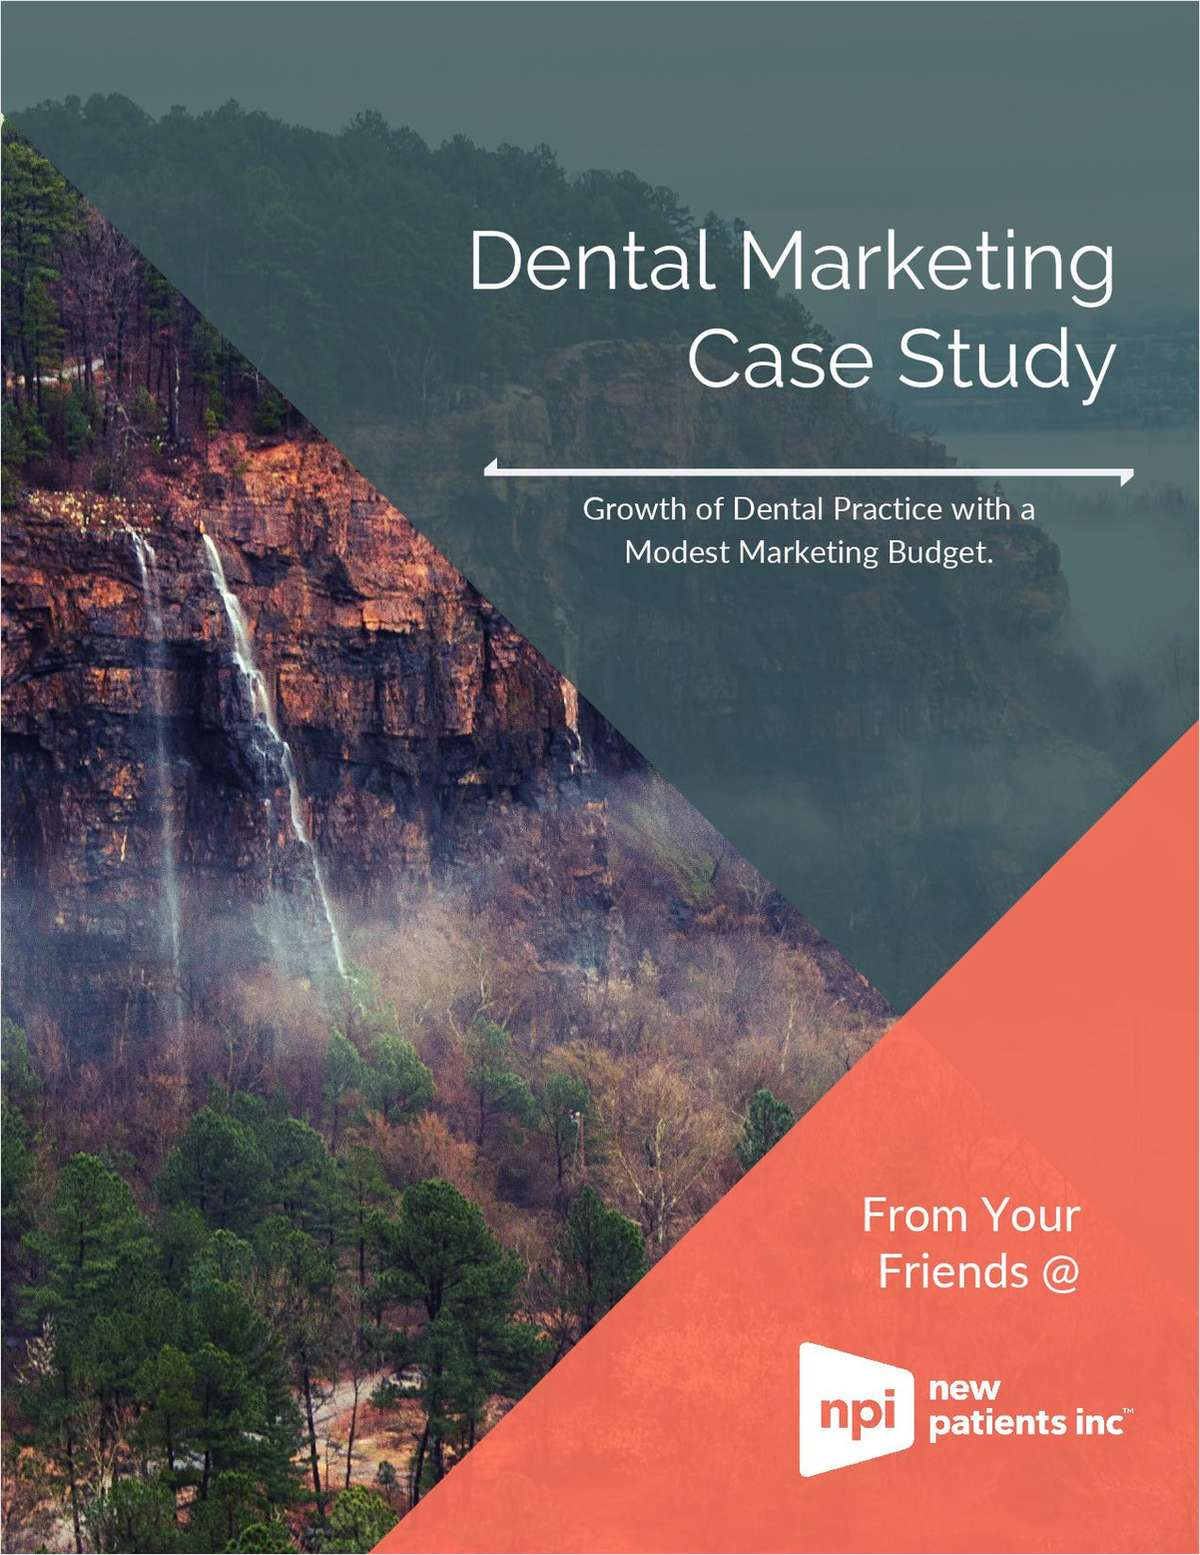 Growing a Dental Practice with a Modest Marketing Budget